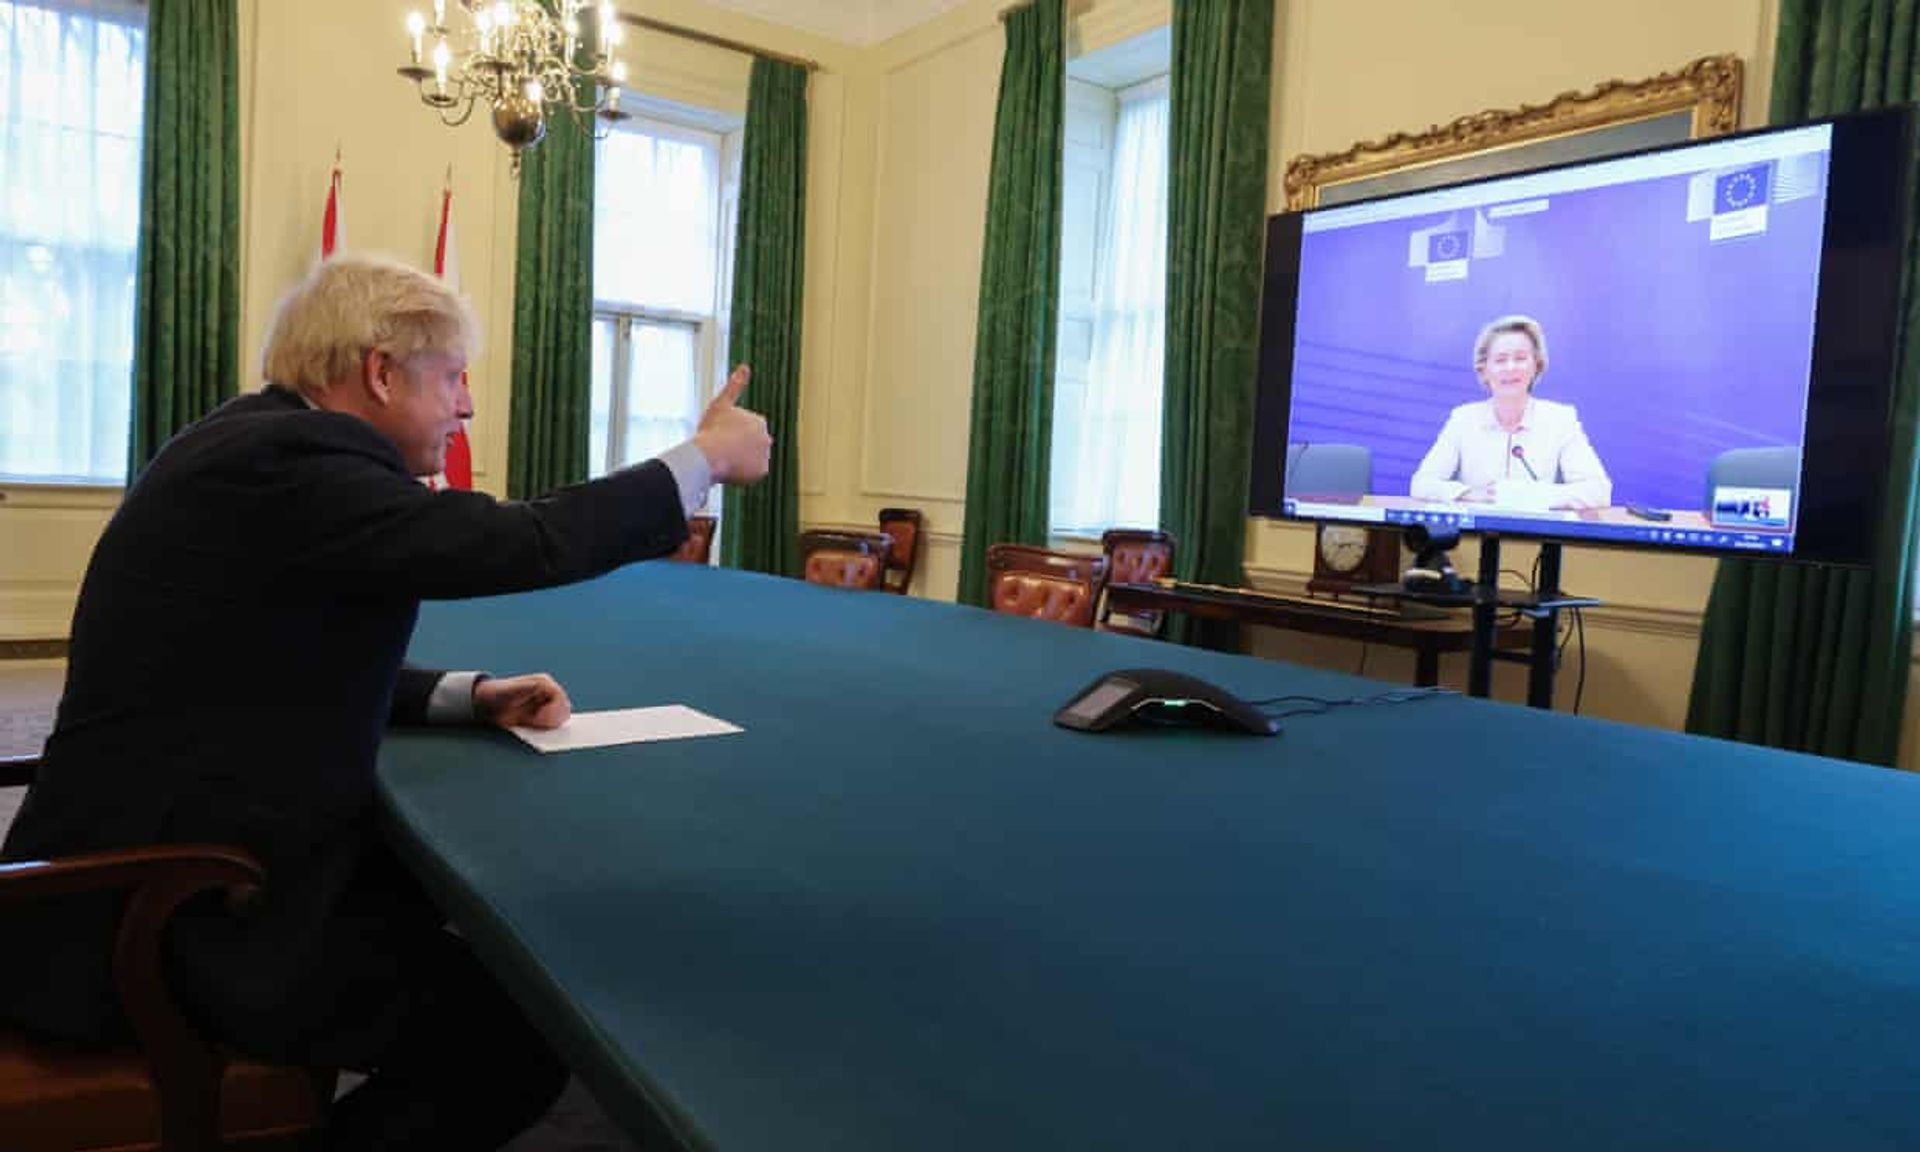 Boris Johnson speaks to Ursula von der Leyen by video link from Downing Street after completing the Brexit deal courtesy No 10 Downing Street